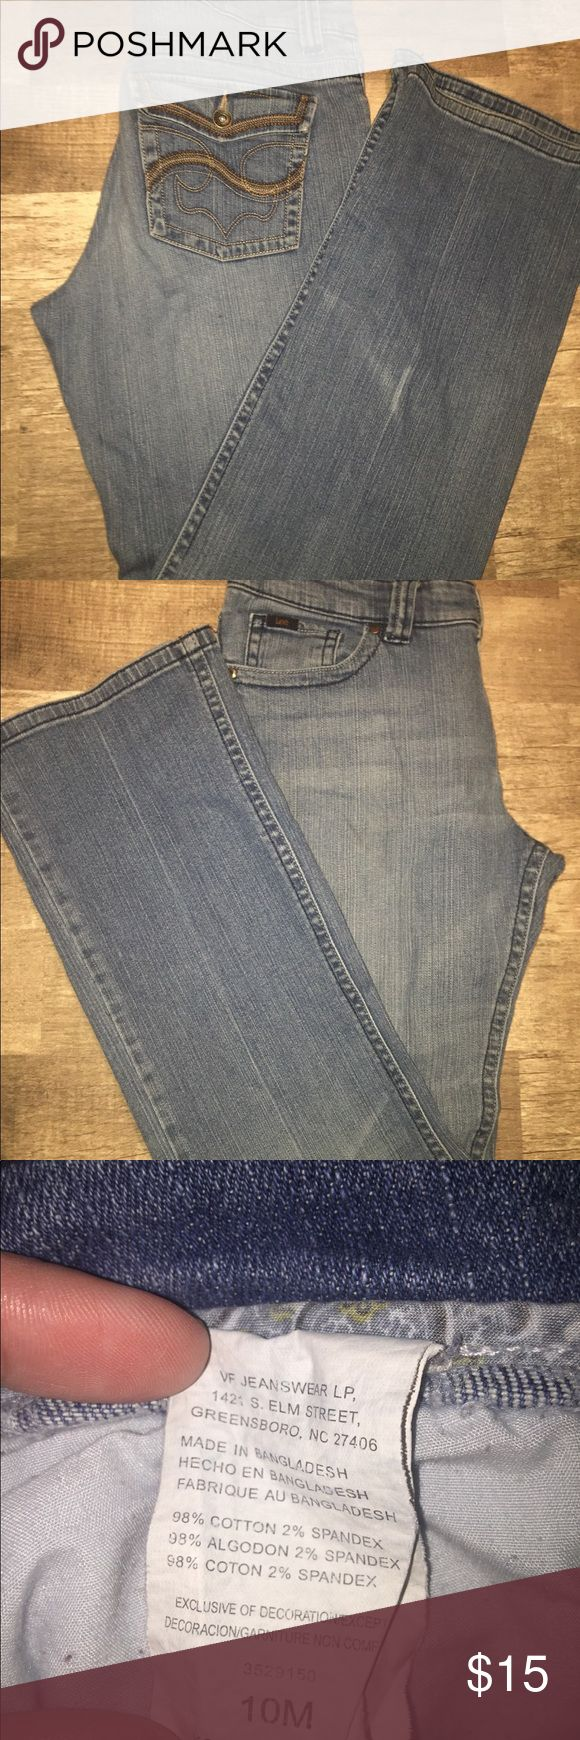 Women's Lee Jeans Size 10 Women's light wash size 10 boot cut Lee jeans. These are in good condition. They come from a smoke free smoke free home. Lee Jeans Boot Cut